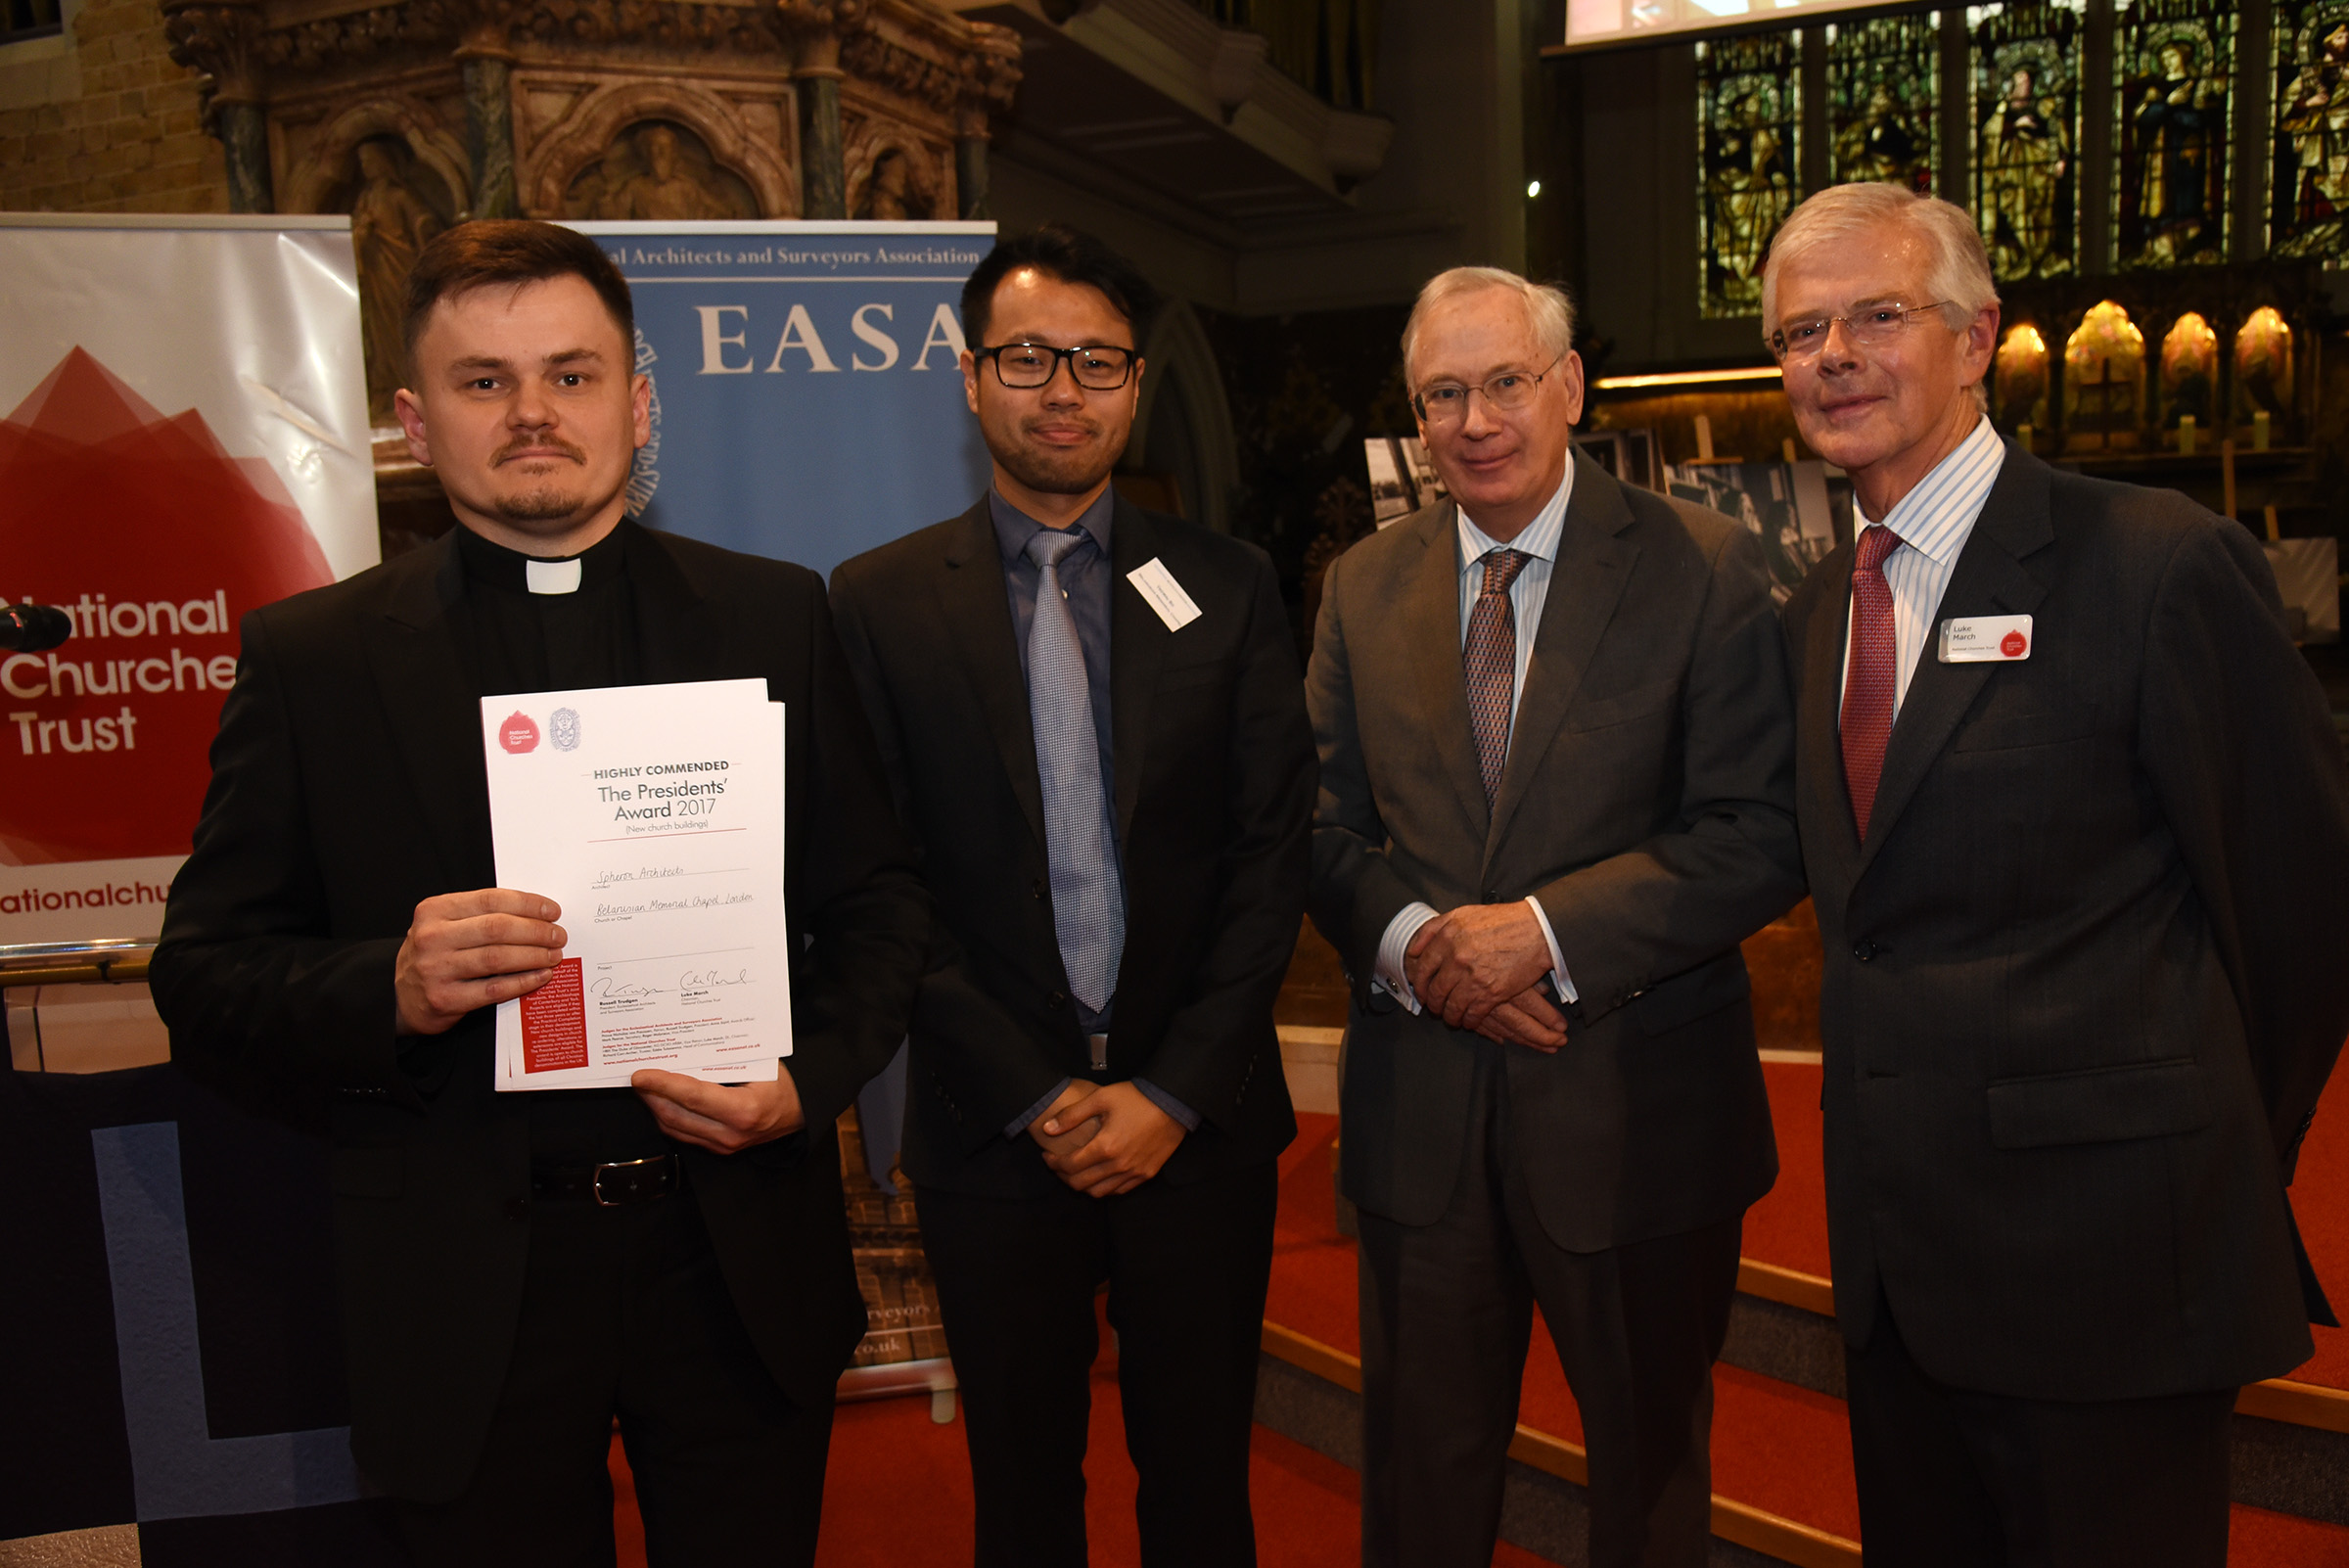 The Belarusian Memorial Chapel and Spheron Architects, Highly Commended for the Presidents' Award for new church buildings